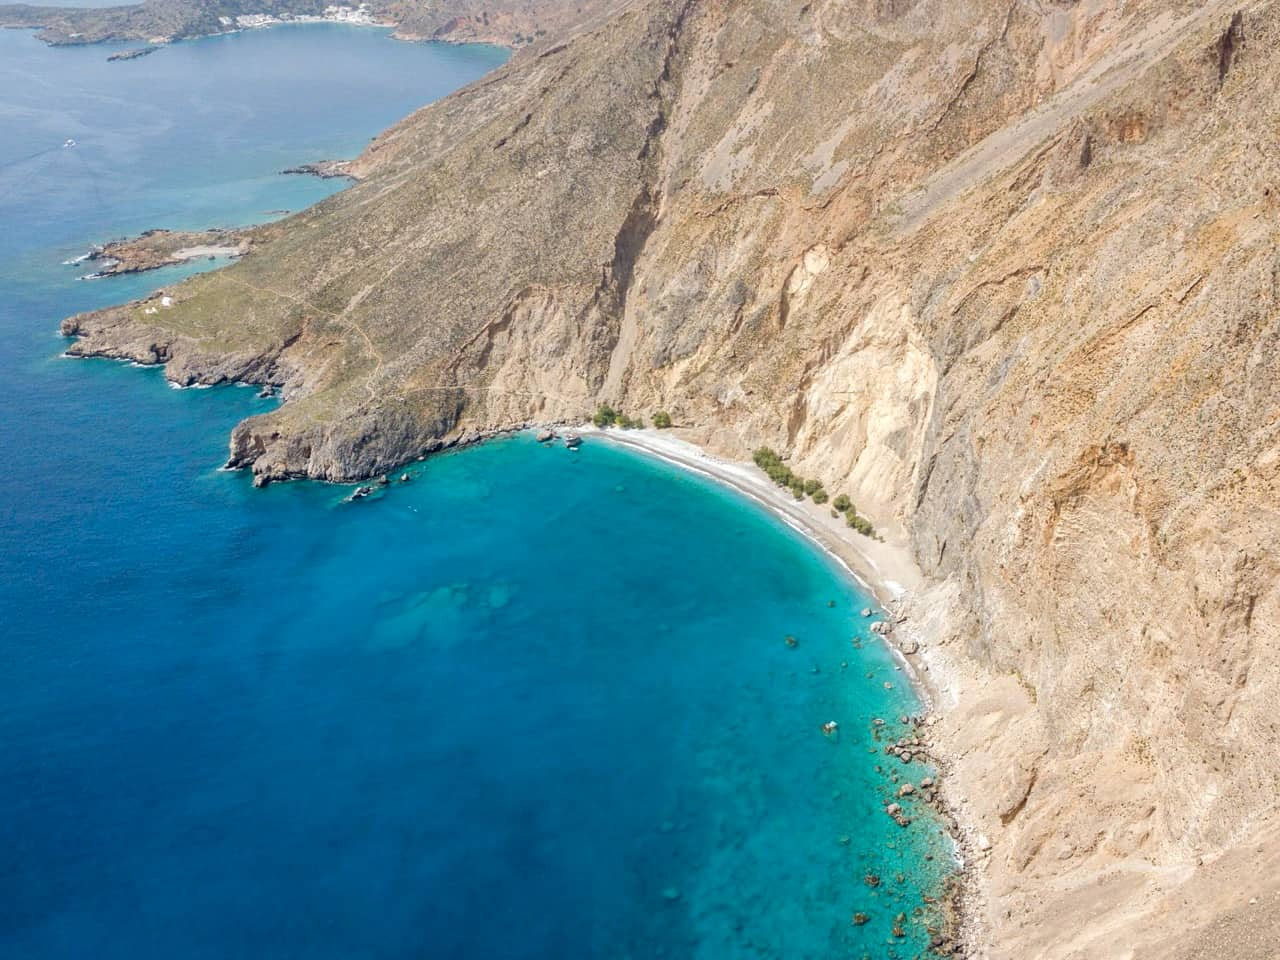 Boat Trip To Best Beaches of South Chania, loutro boat trip, sfakia boat trip, south chania beaches boat trip, marmara boat trip, kalogeros beach boat trip, agios pavlos st paul boat trip, fournoti beach boat trip, best boat trips sfakia crete